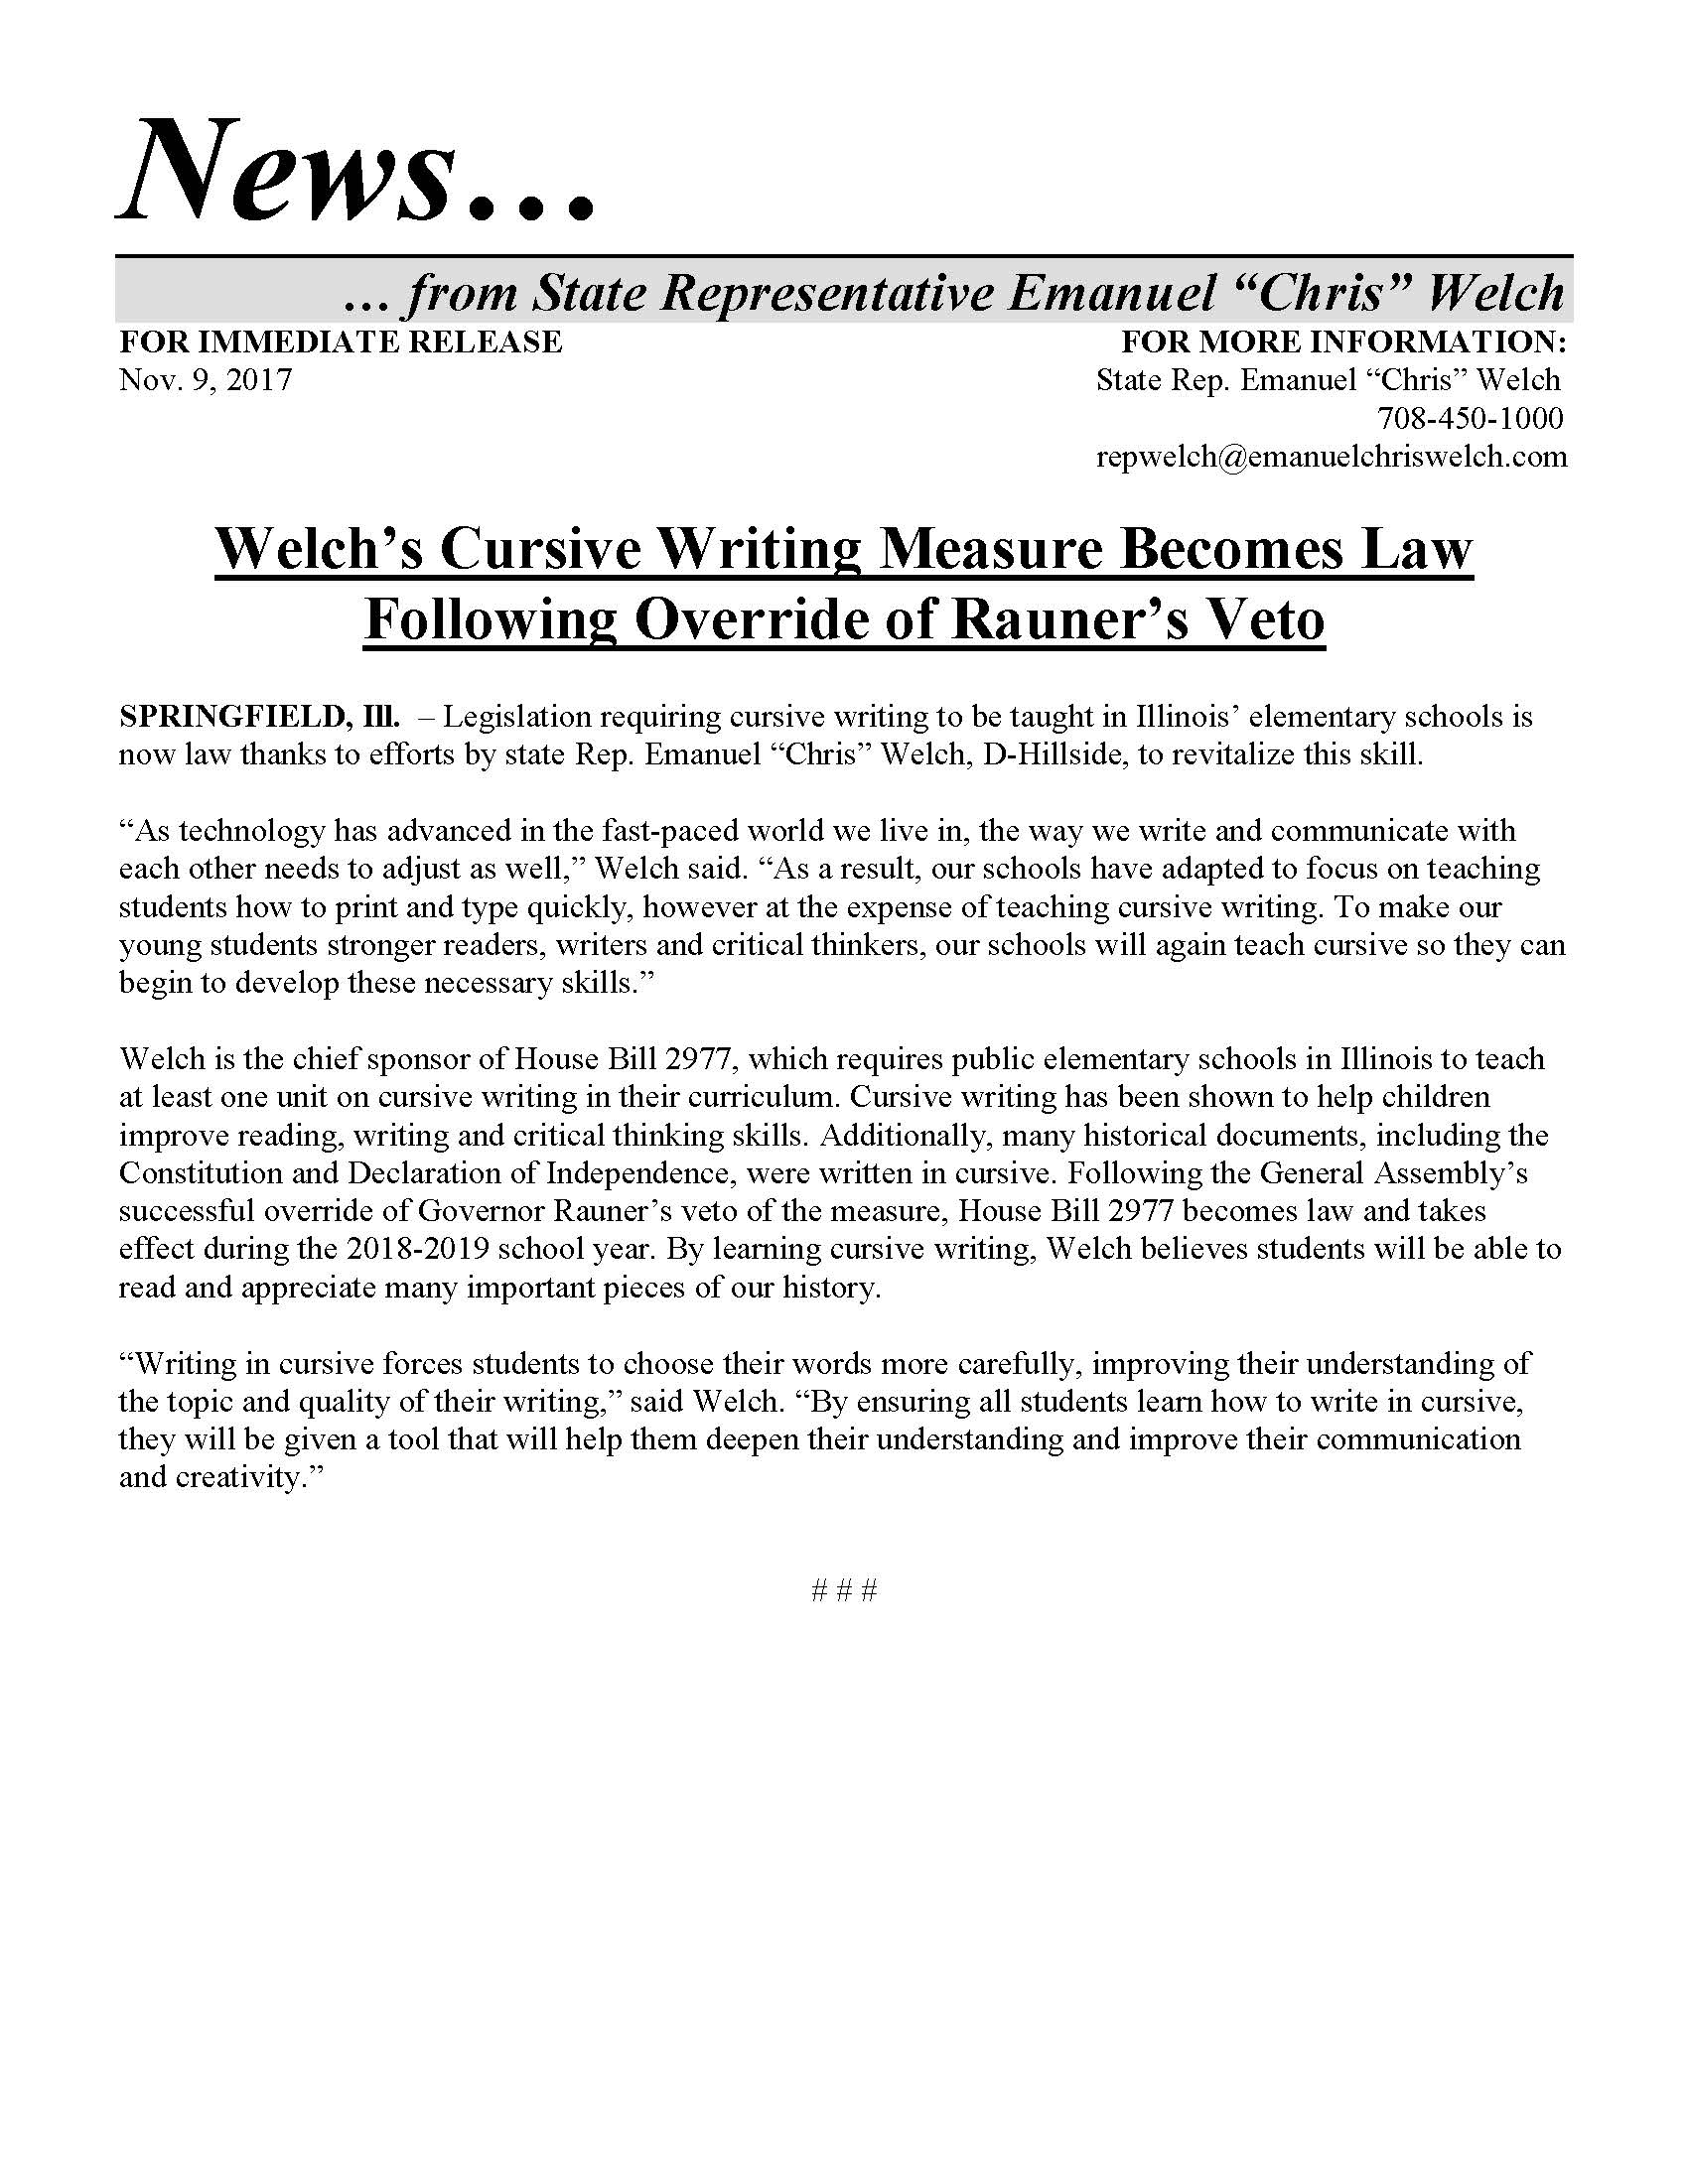 Welch's Cursive Writing Measure Becomes Law   (November 9, 2017)